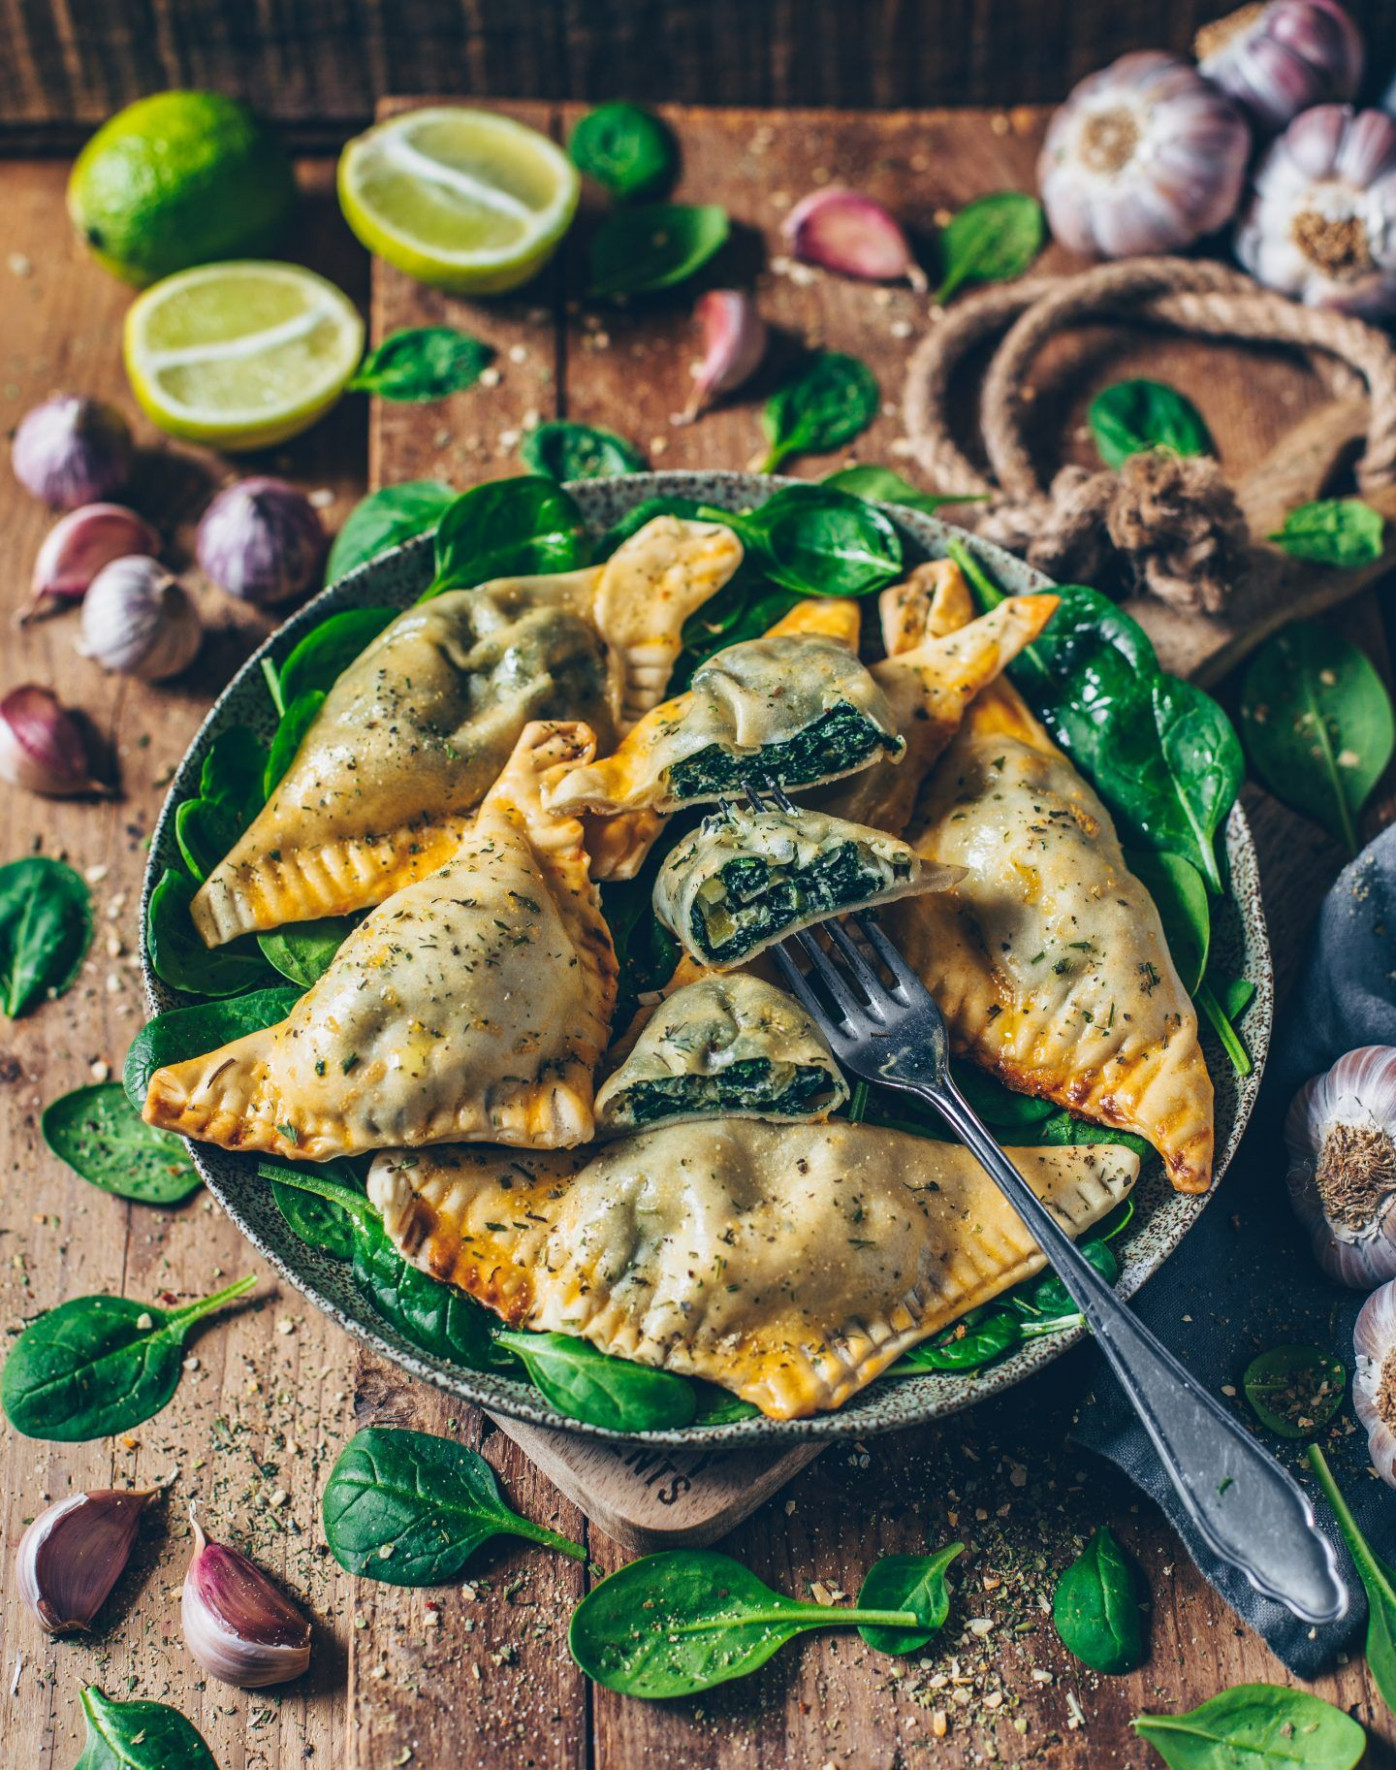 Vegan Dumplings Stuffed With Spinach And Cashew Ricotta - Vegetarian Recipes Japanese